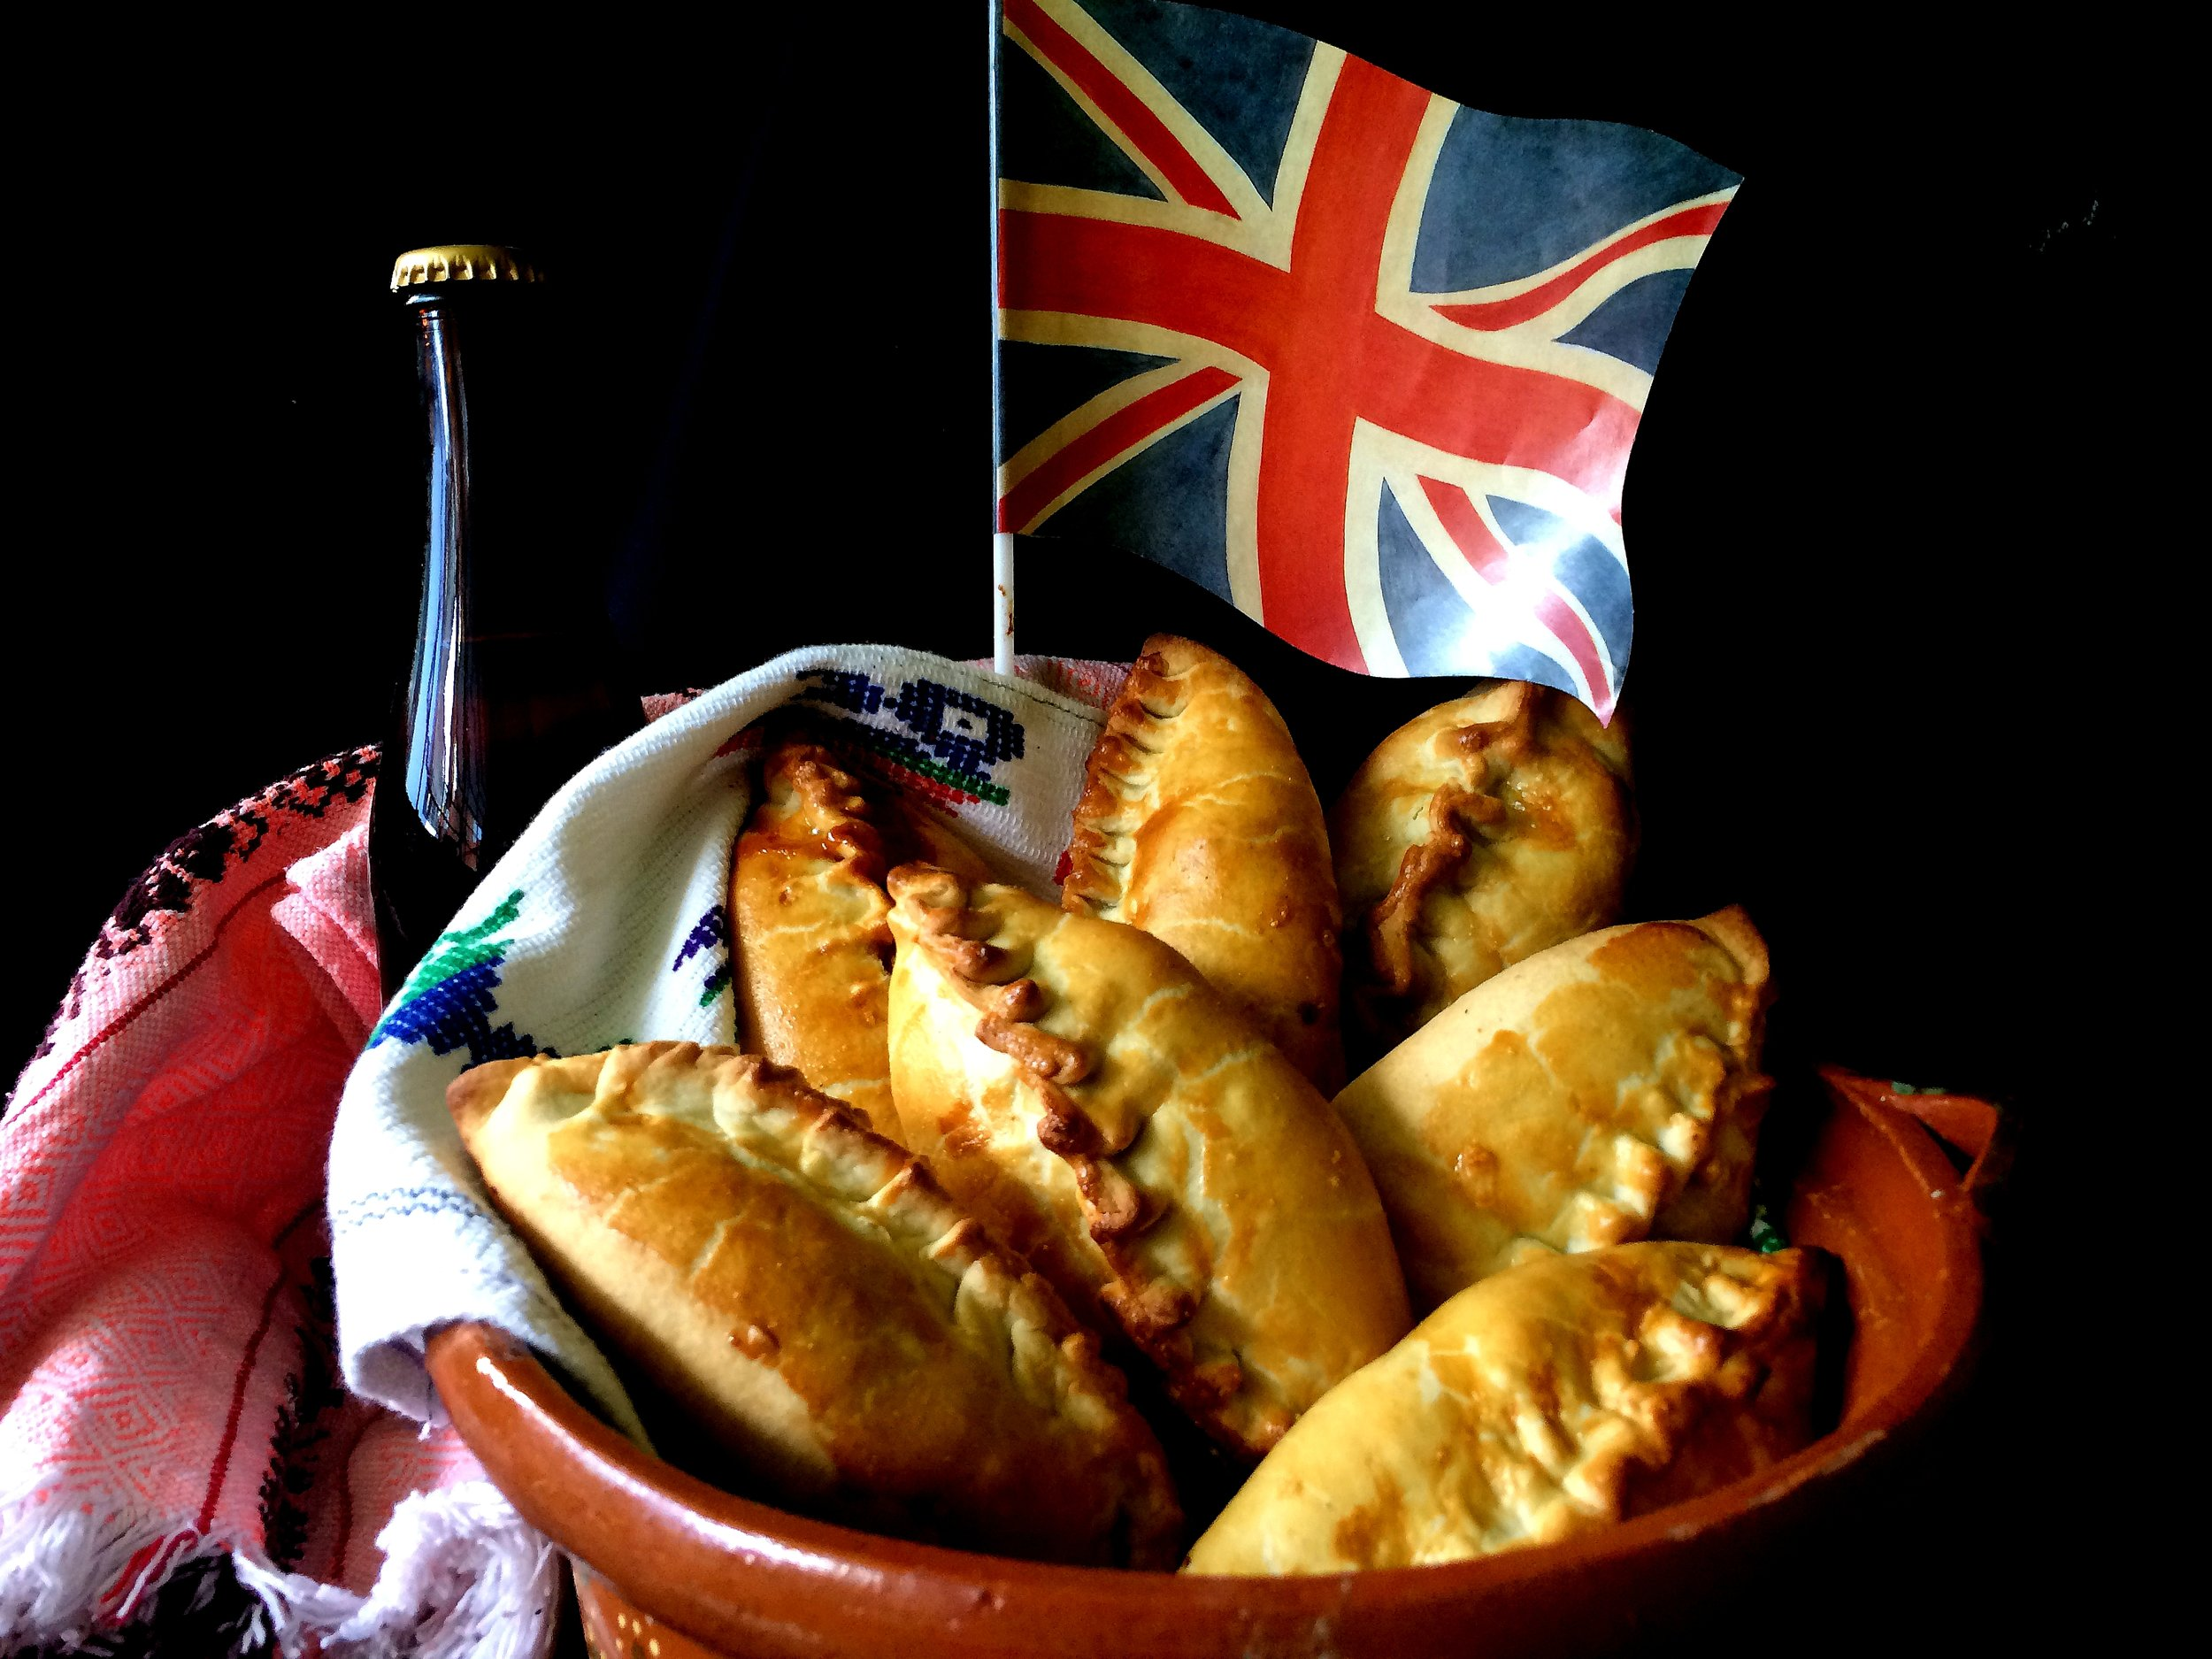 "Subterranean Snacks: Cornish Pasties in 19th Century Mexico              96               Normal   0           false   false   false     EN-US   X-NONE   X-NONE                                                                                                                                                                                                                                                                                                                                                                                                                                                                                                                                                                                                                                                                                                                                                                                                                                                                                      /* Style Definitions */ table.MsoNormalTable 	{mso-style-name:""Table Normal""; 	mso-tstyle-rowband-size:0; 	mso-tstyle-colband-size:0; 	mso-style-noshow:yes; 	mso-style-priority:99; 	mso-style-parent:""""; 	mso-padding-alt:0in 5.4pt 0in 5.4pt; 	mso-para-margin:0in; 	mso-para-margin-bottom:.0001pt; 	mso-pagination:widow-orphan; 	font-size:12.0pt; 	font-family:Calibri; 	mso-ascii-font-family:Calibri; 	mso-ascii-theme-font:minor-latin; 	mso-hansi-font-family:Calibri; 	mso-hansi-theme-font:minor-latin;}      Struggling to decide what to have for lunch today? Take a tip from history & pack a pie! This week, The Feast explores how the pastry pie was the original grab & go lunch option, from the Ottoman börek to the Cornish pasty to the Hot Pocket. Although the Cornish pasty may be an icon of English cuisine, learn how a small town in the mountains of Mexico made this traditional mining meal their own. Plus, all the EU pastry laws you can handle on this week's special collaboration episode featuring Rocio Carvajal & PassTheChipotle.com"